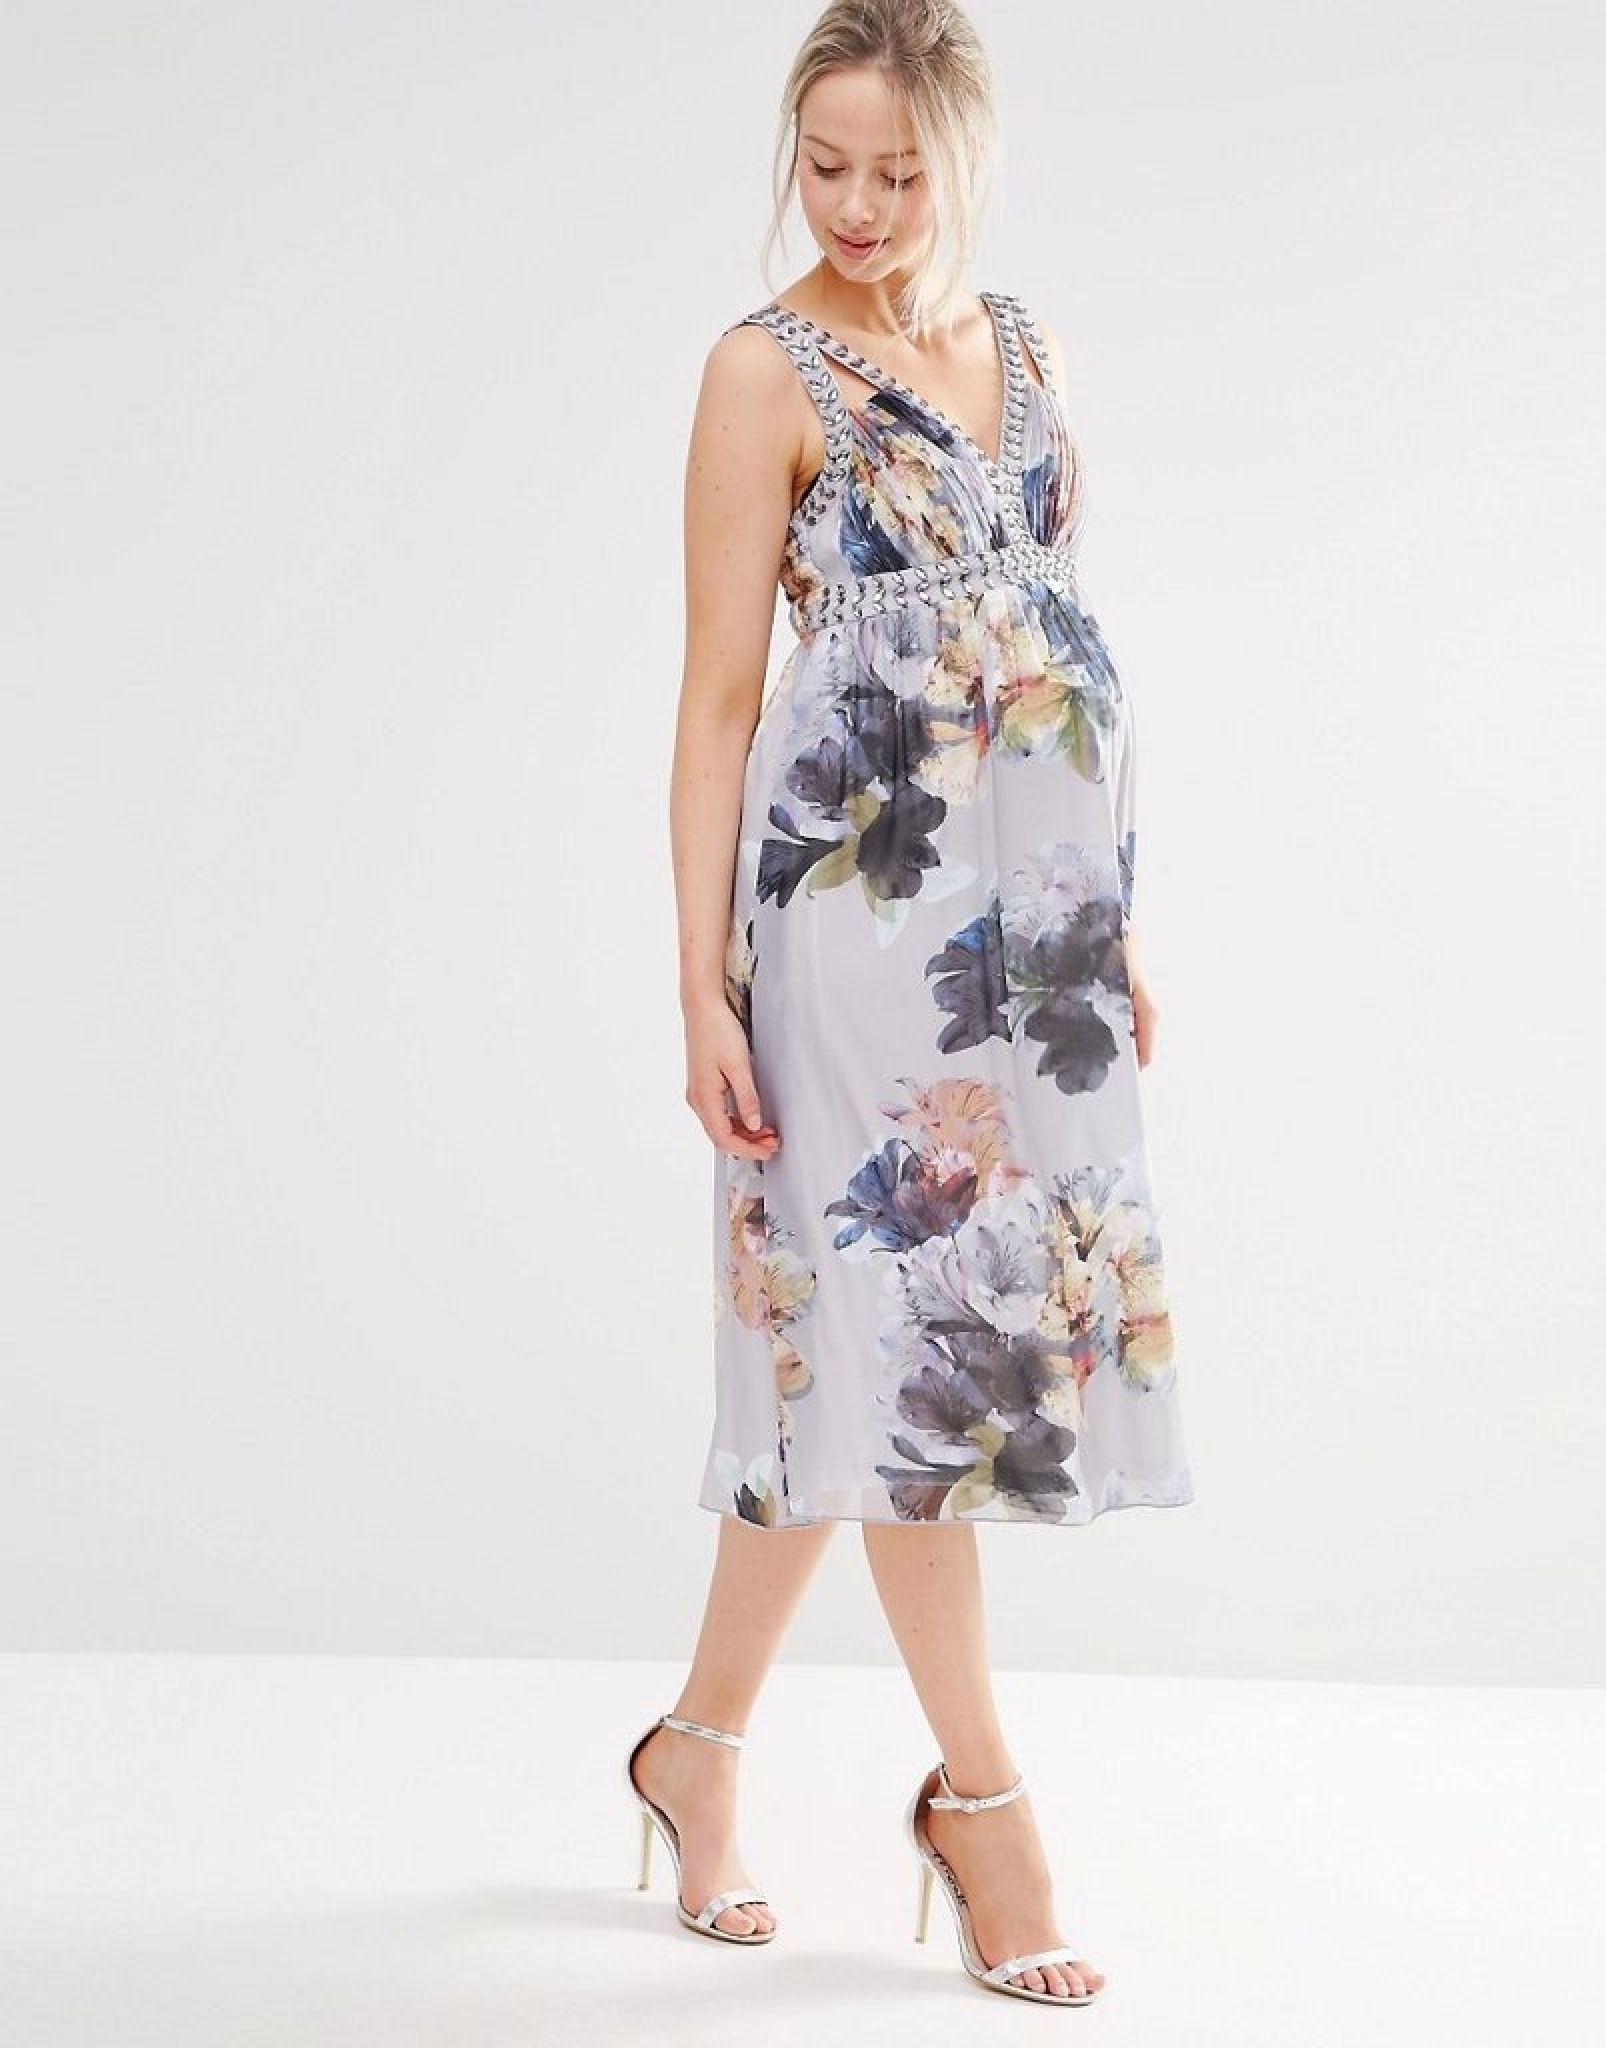 Guest at wedding dresses  maternity guest wedding dresses  plus size dresses for wedding